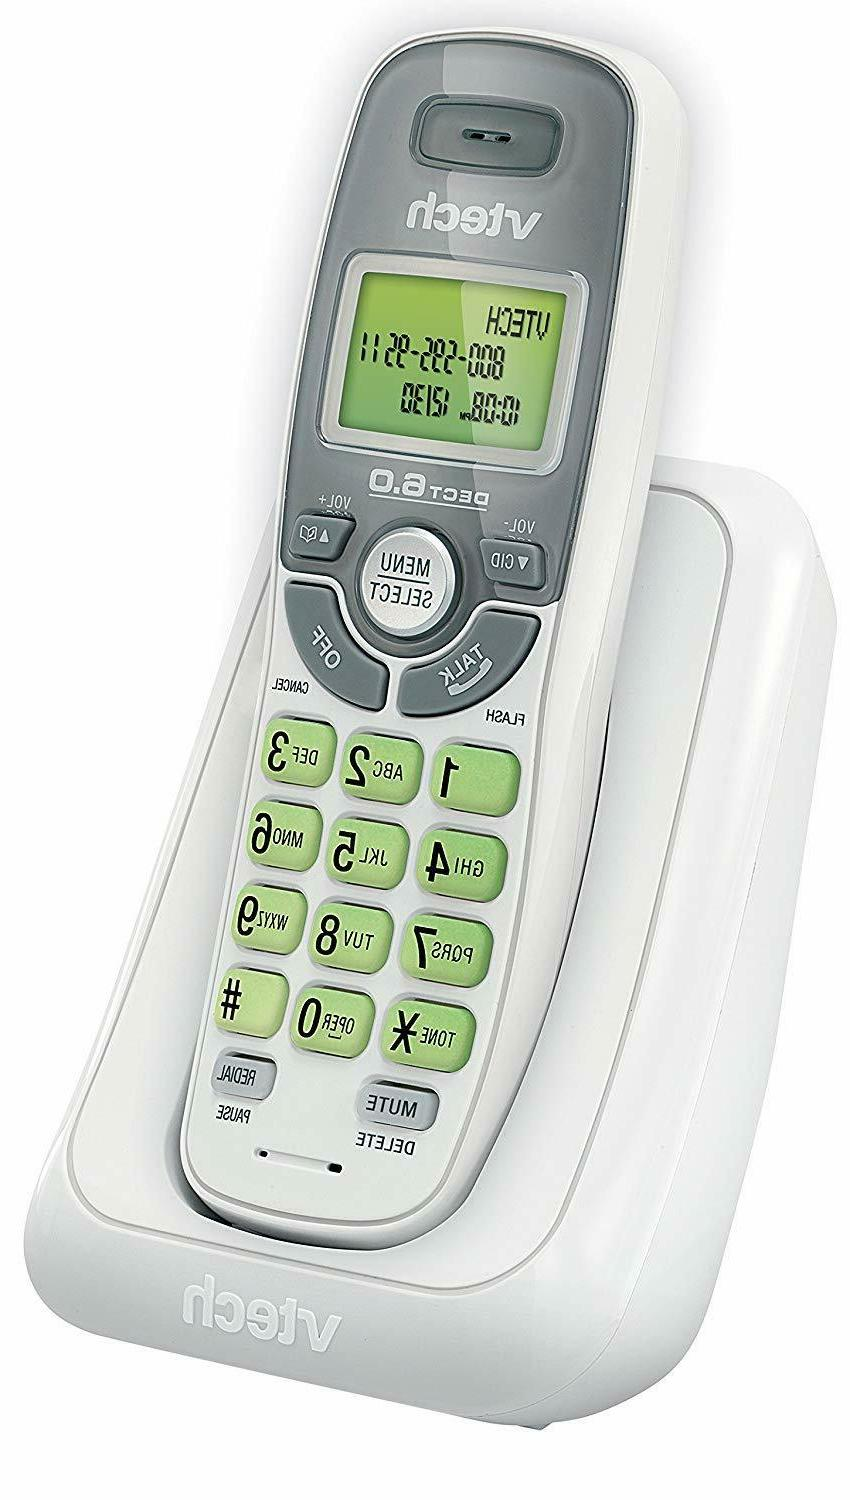 1 Home Phone Vtech Dect 6.0 Telephone